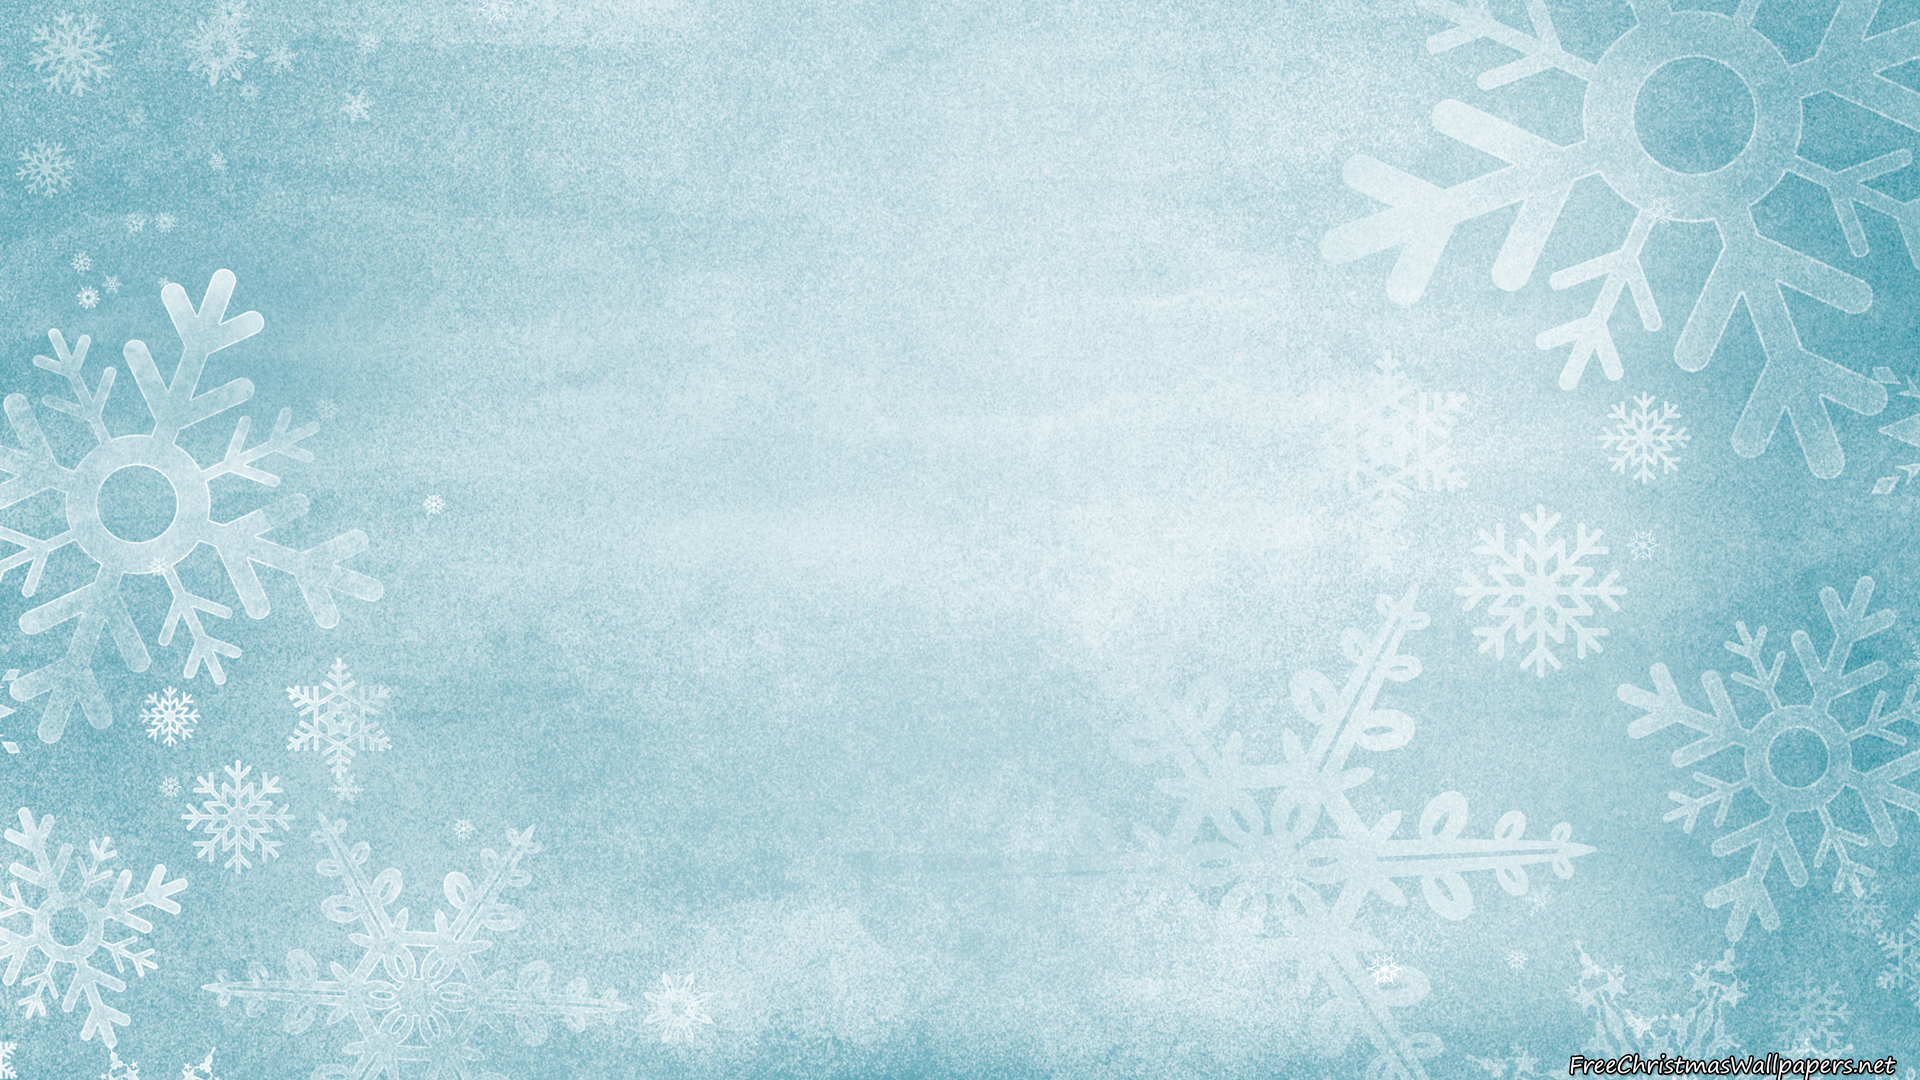 Download Frozen Christmas Background 1024x768 1366x768 1920x1080 1920x1080